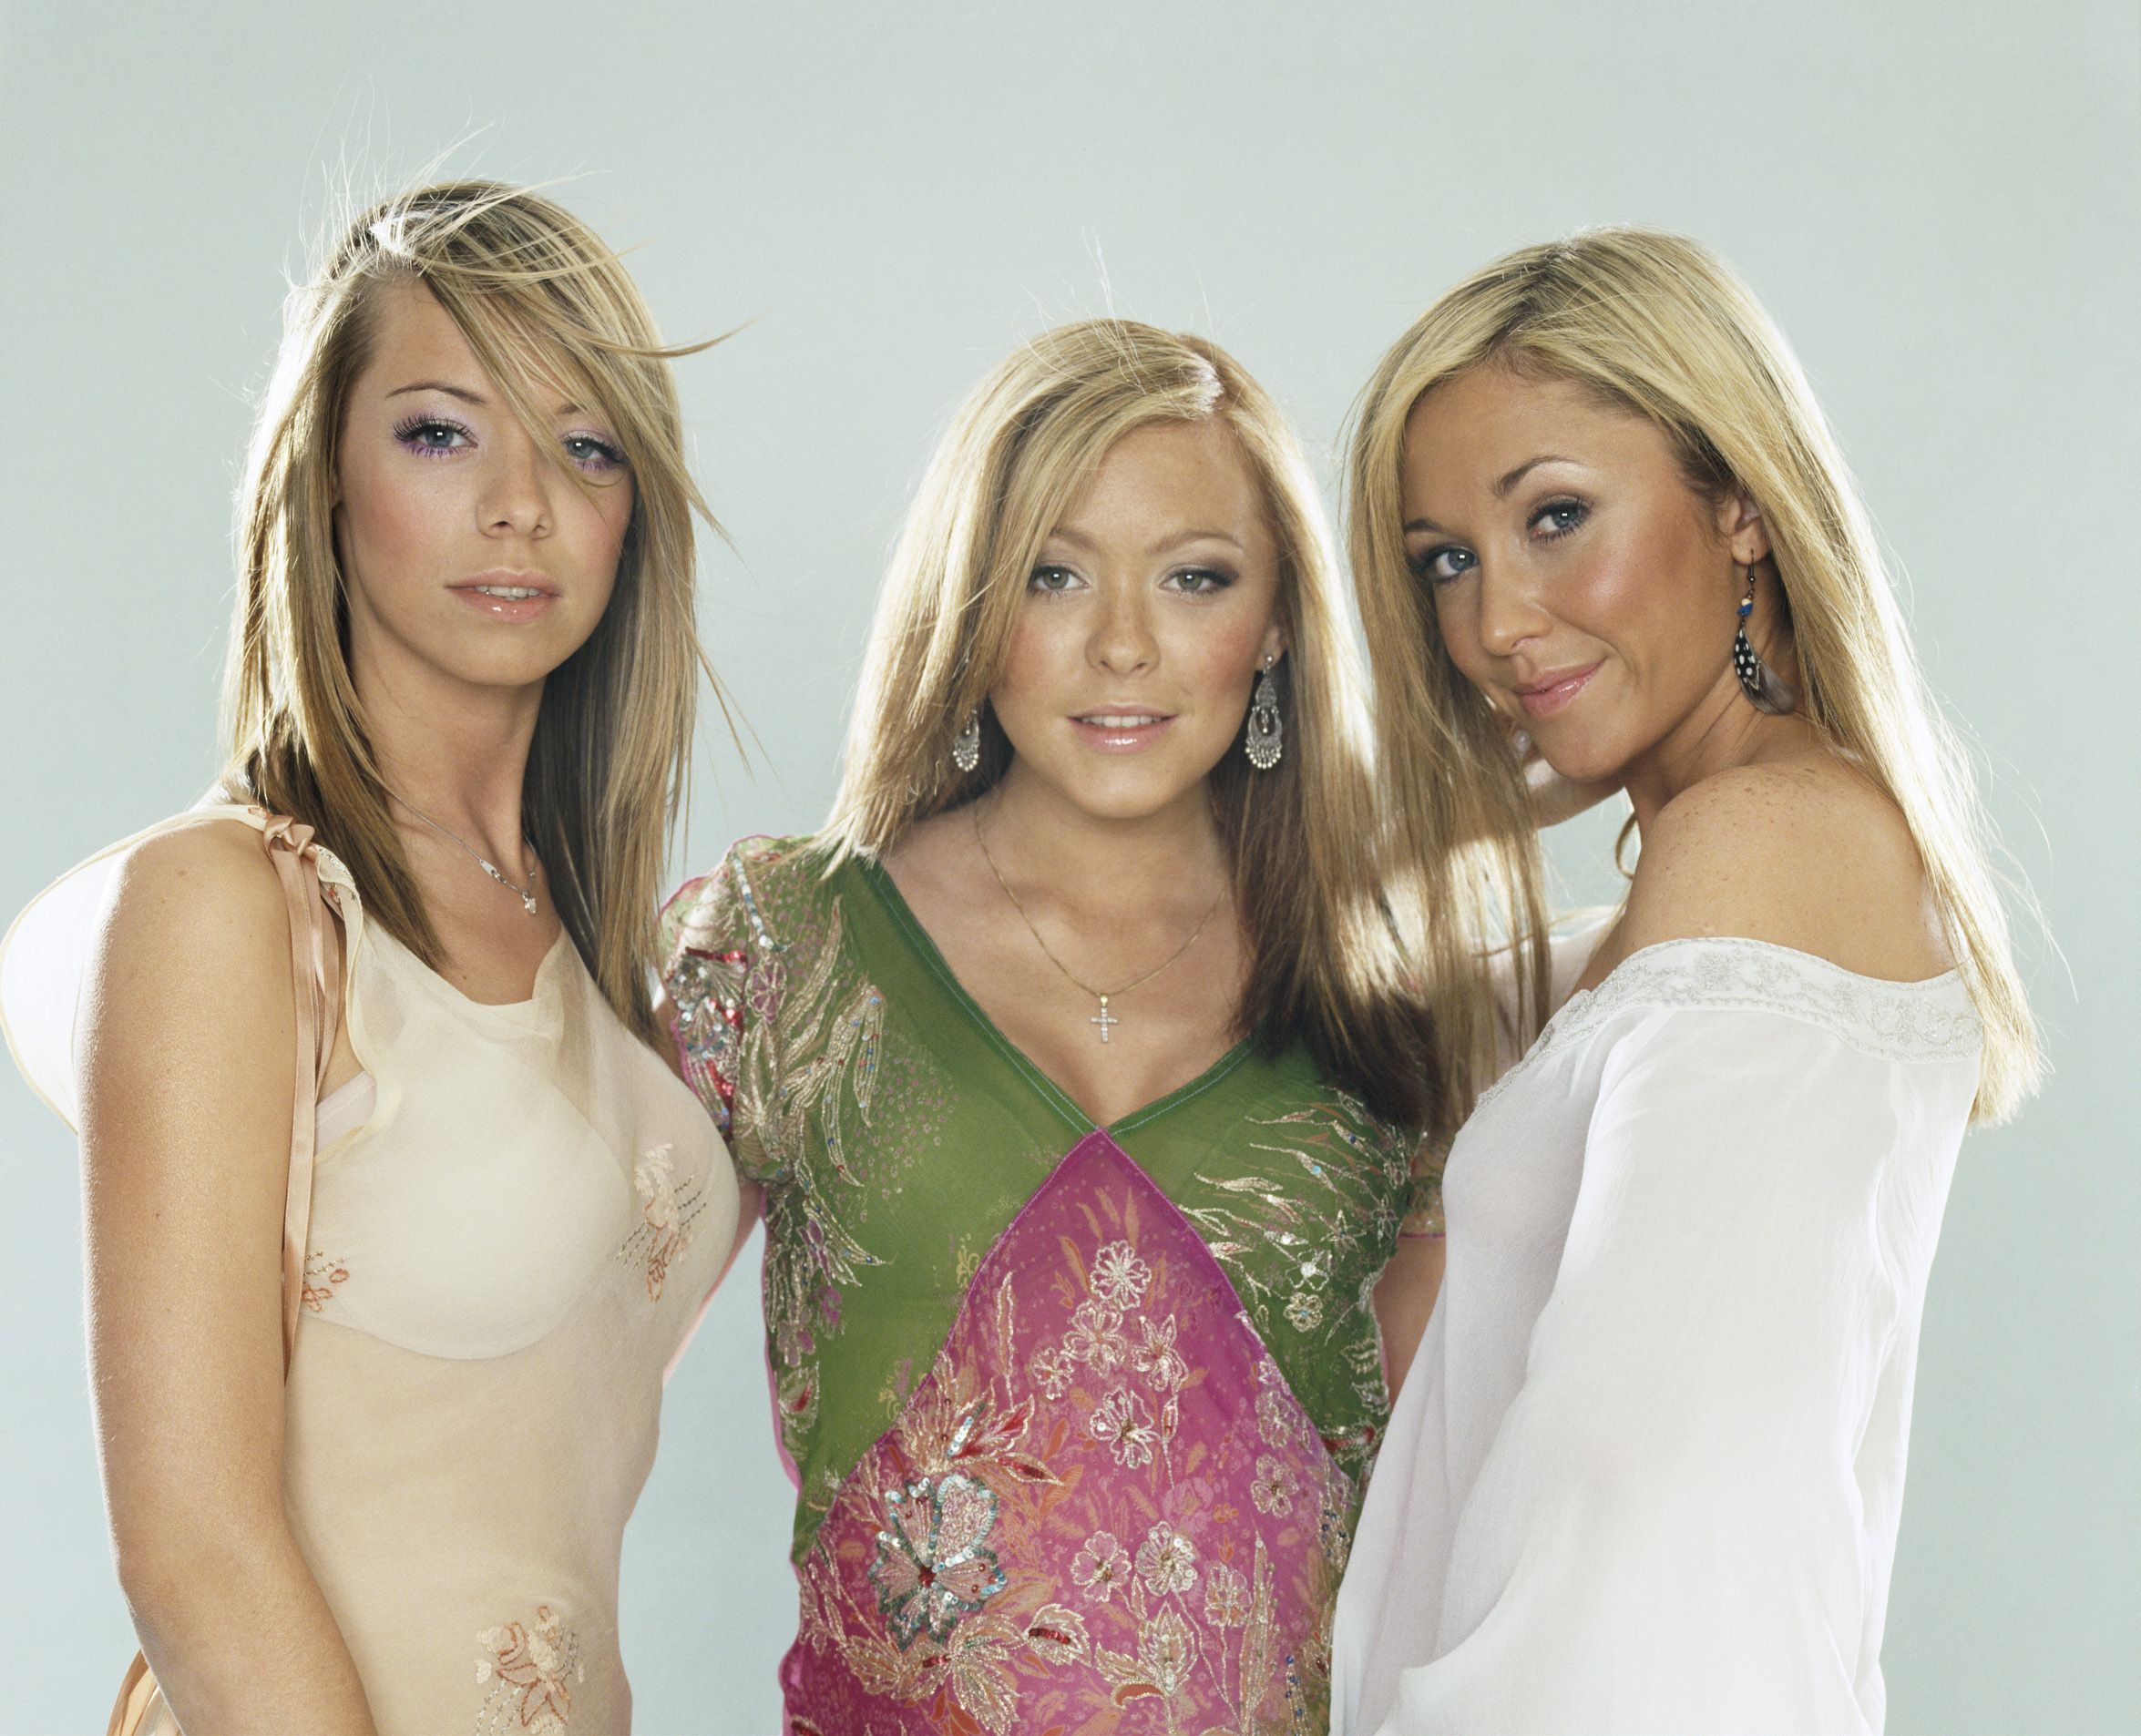 Atomic Kitten Atomic Kitten Women In Music Female Singers